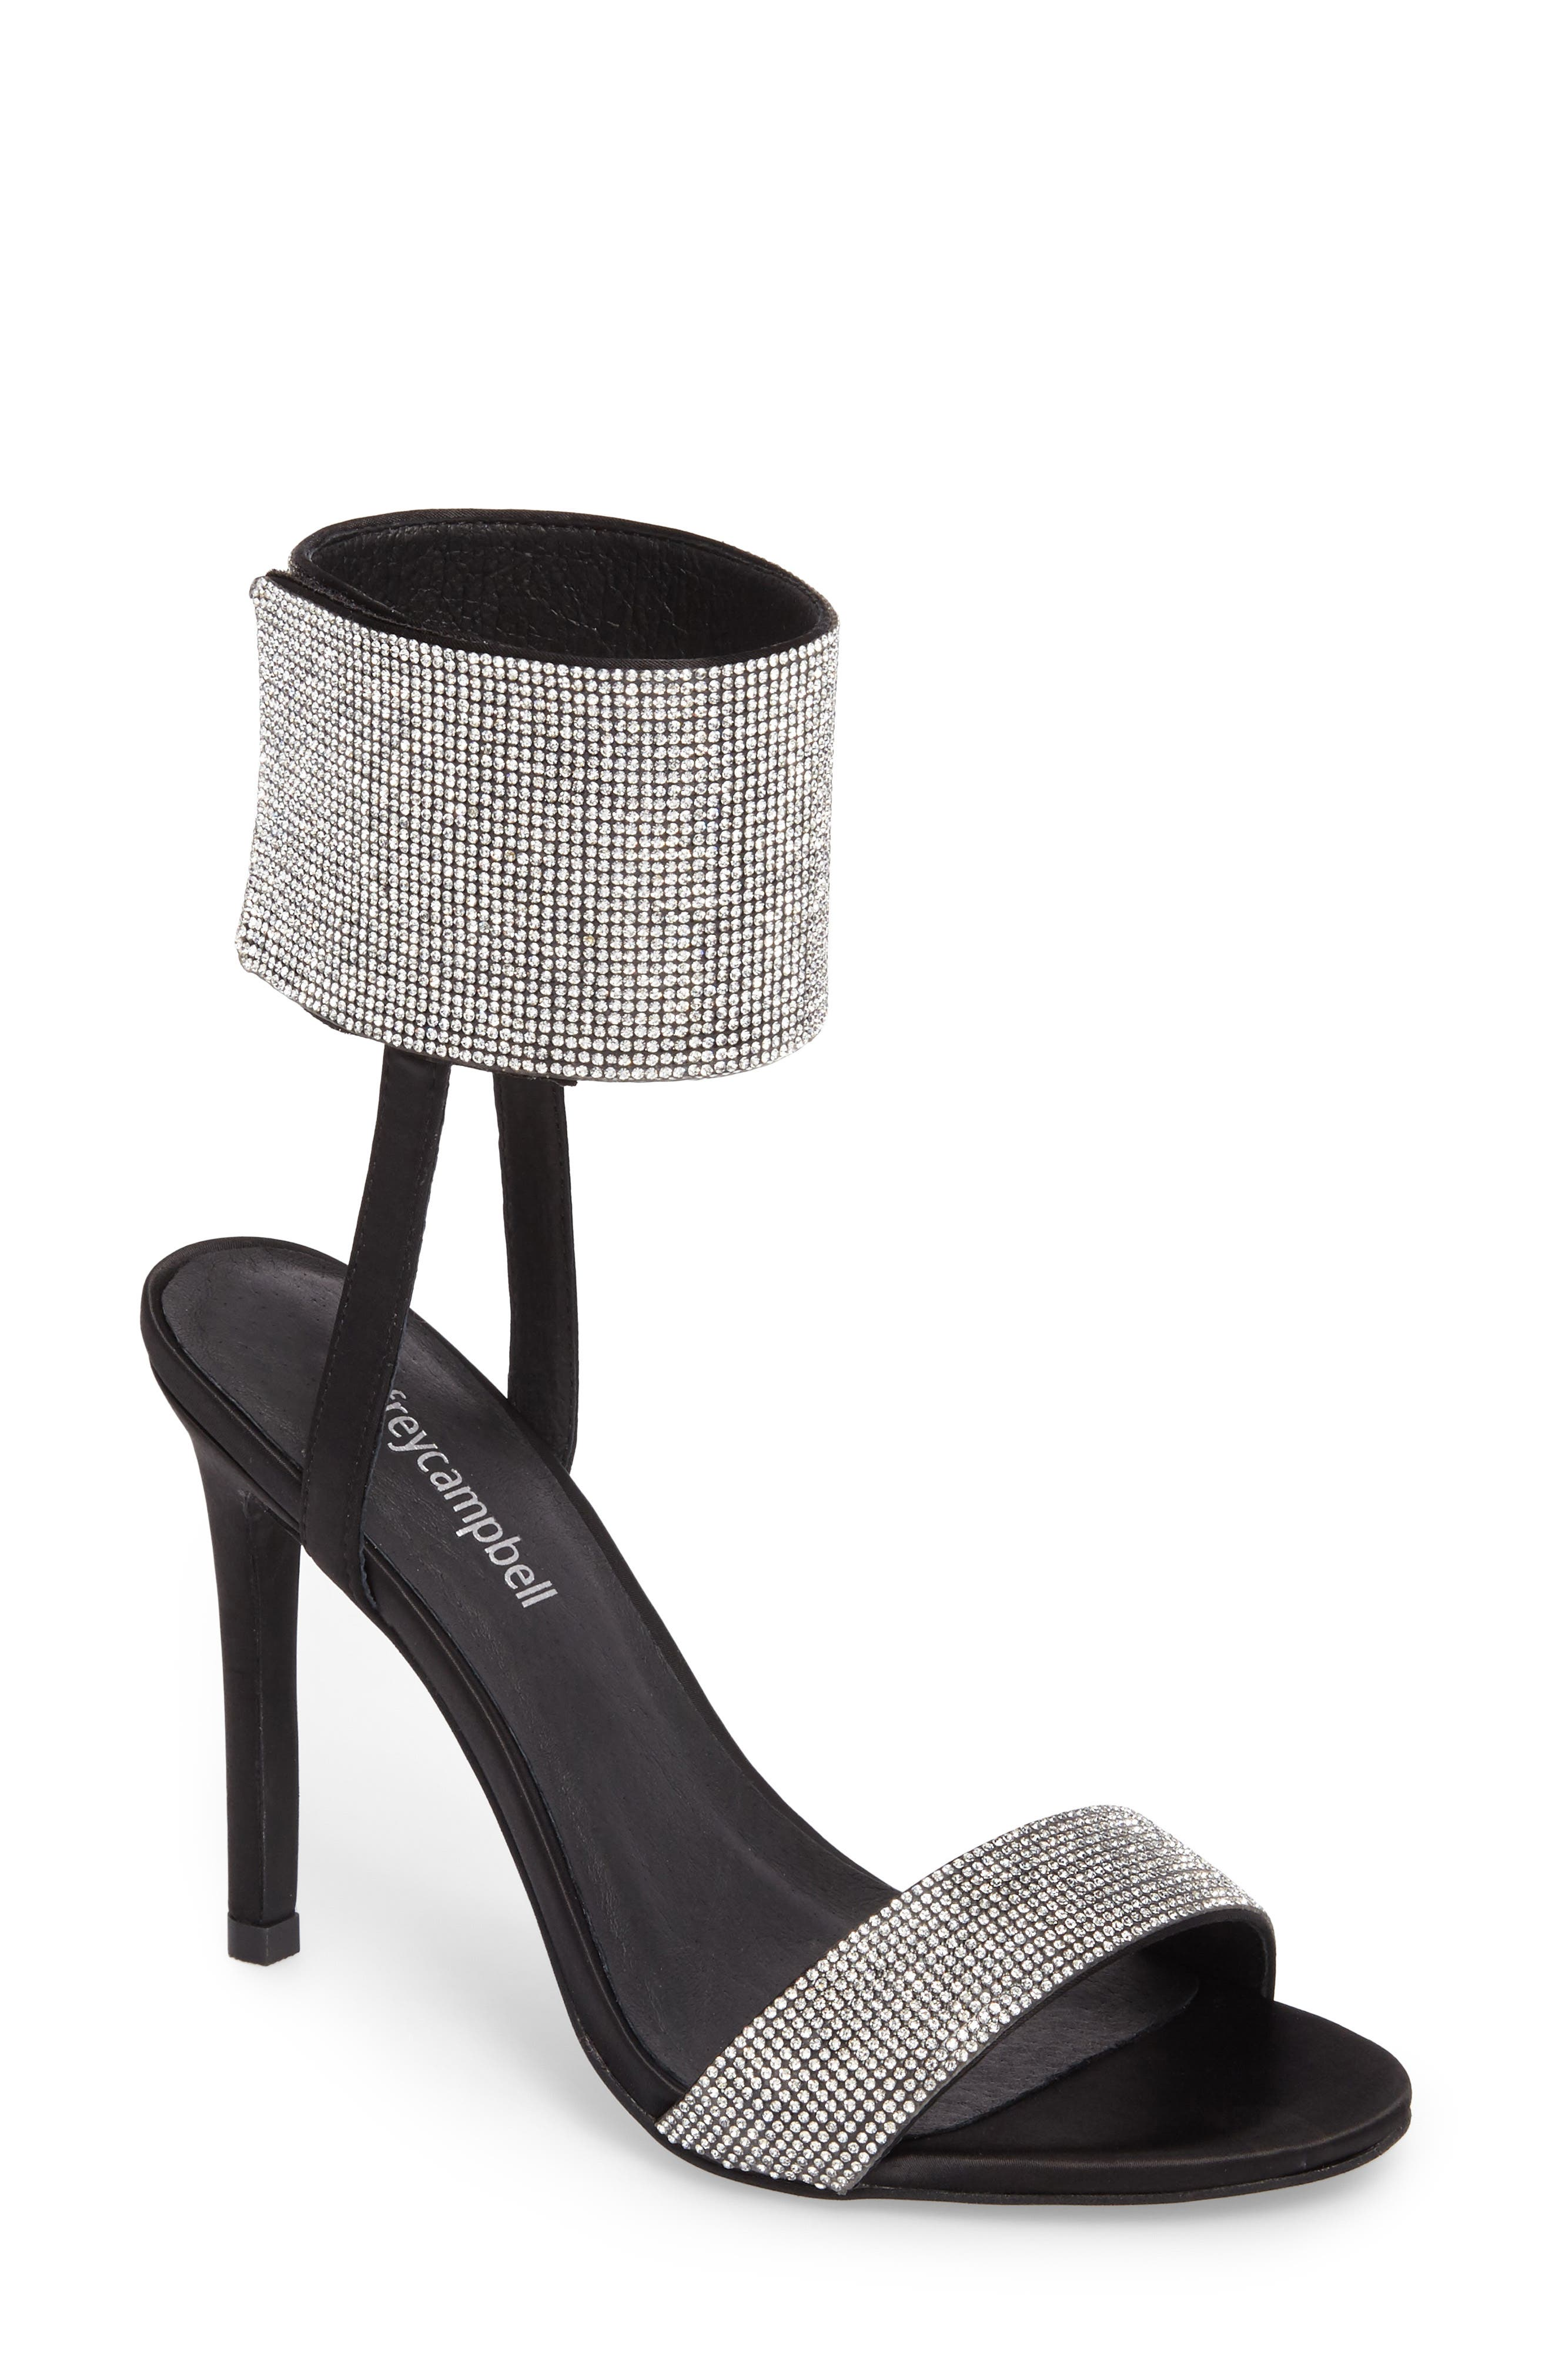 Frost Ankle Cuff Sandal,                             Main thumbnail 1, color,                             Black Silver